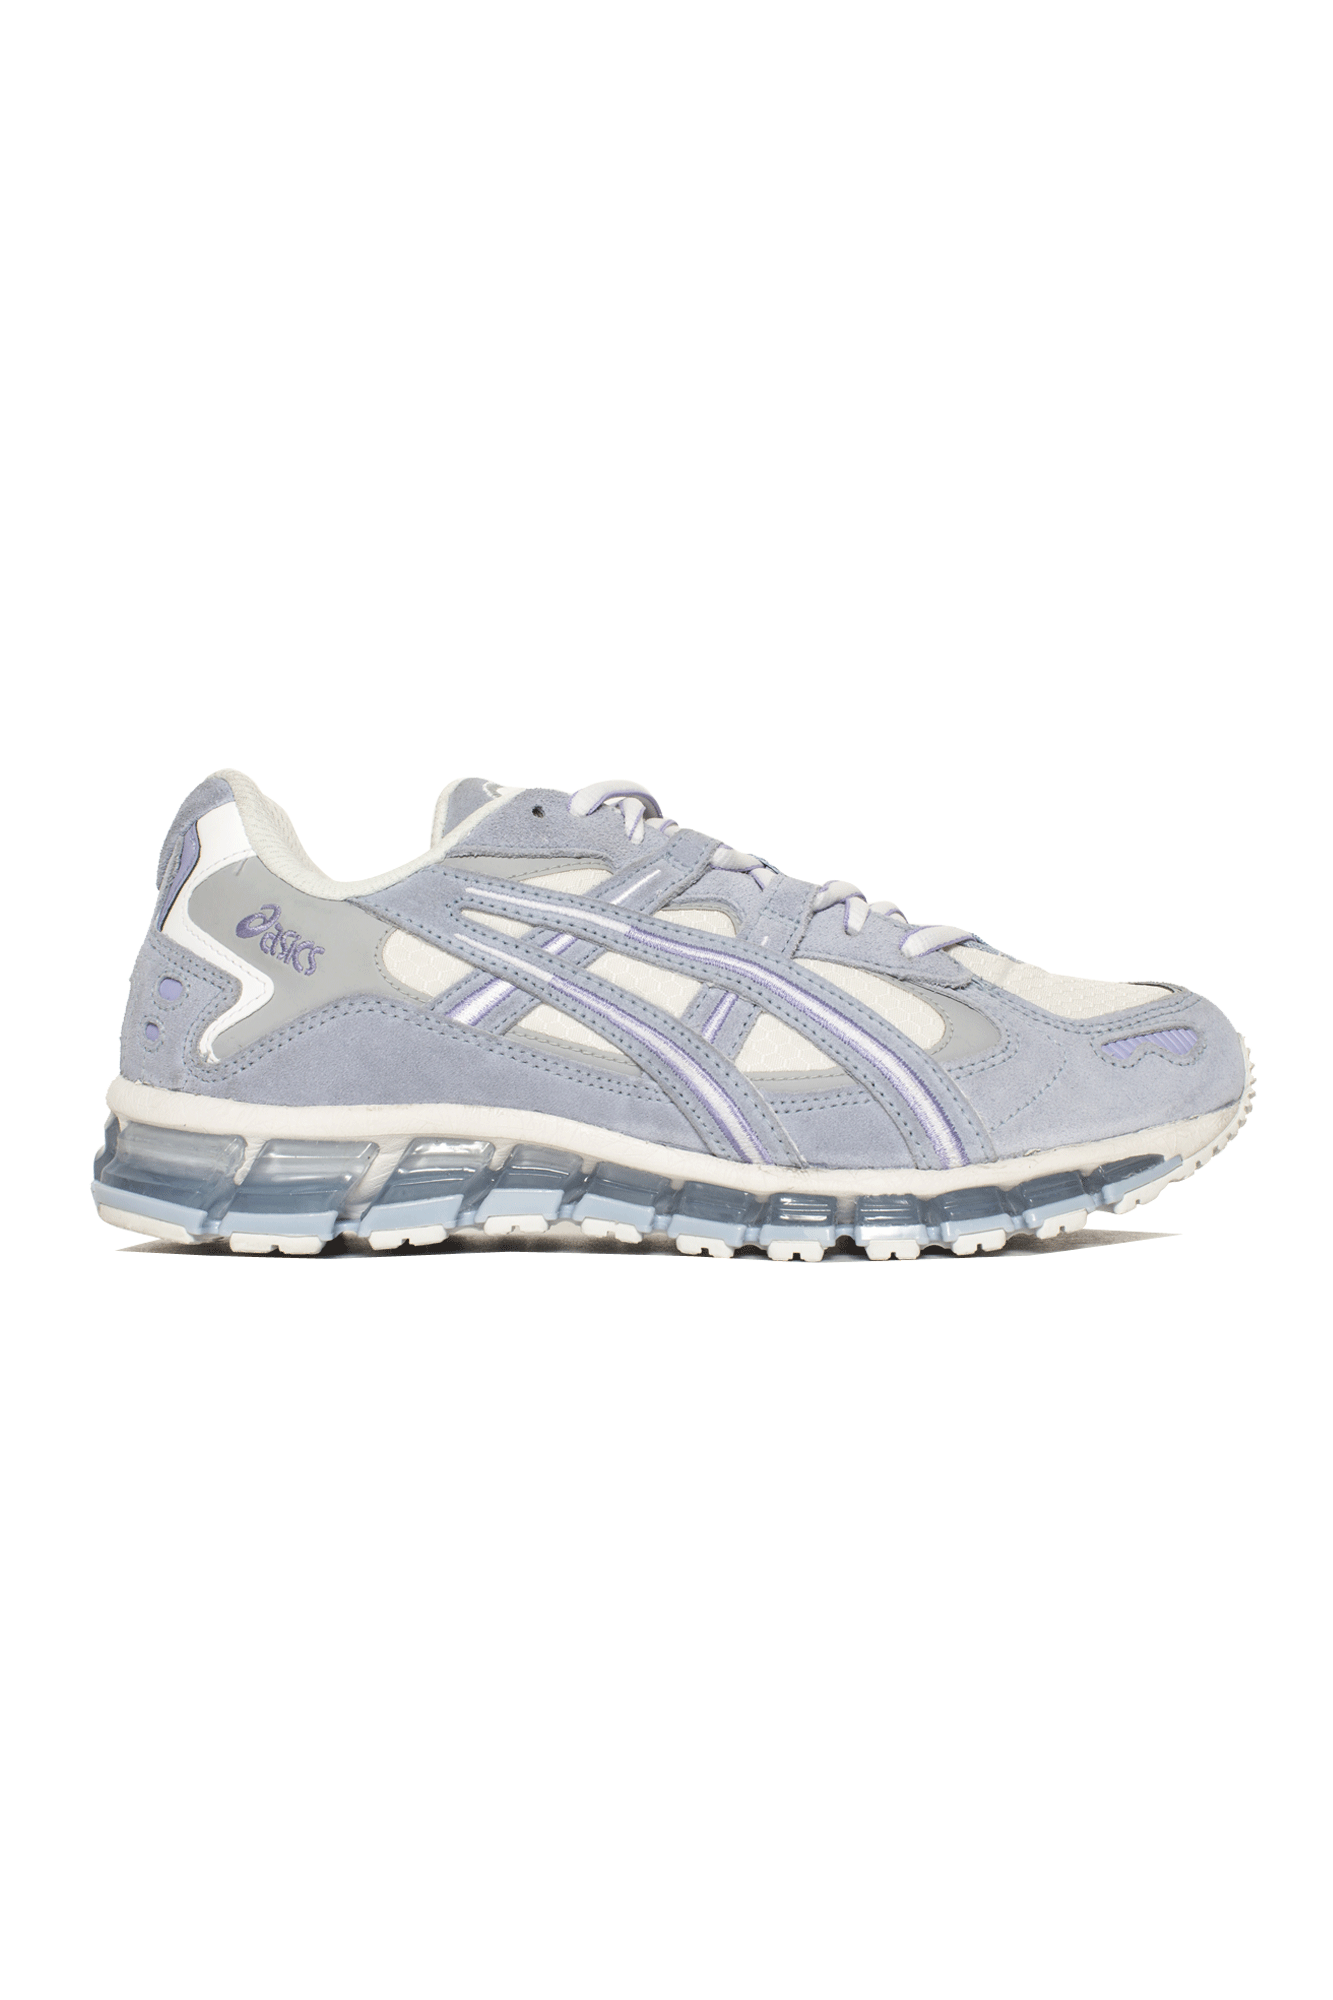 Gel-Kayano 5 360 G-TX Blu